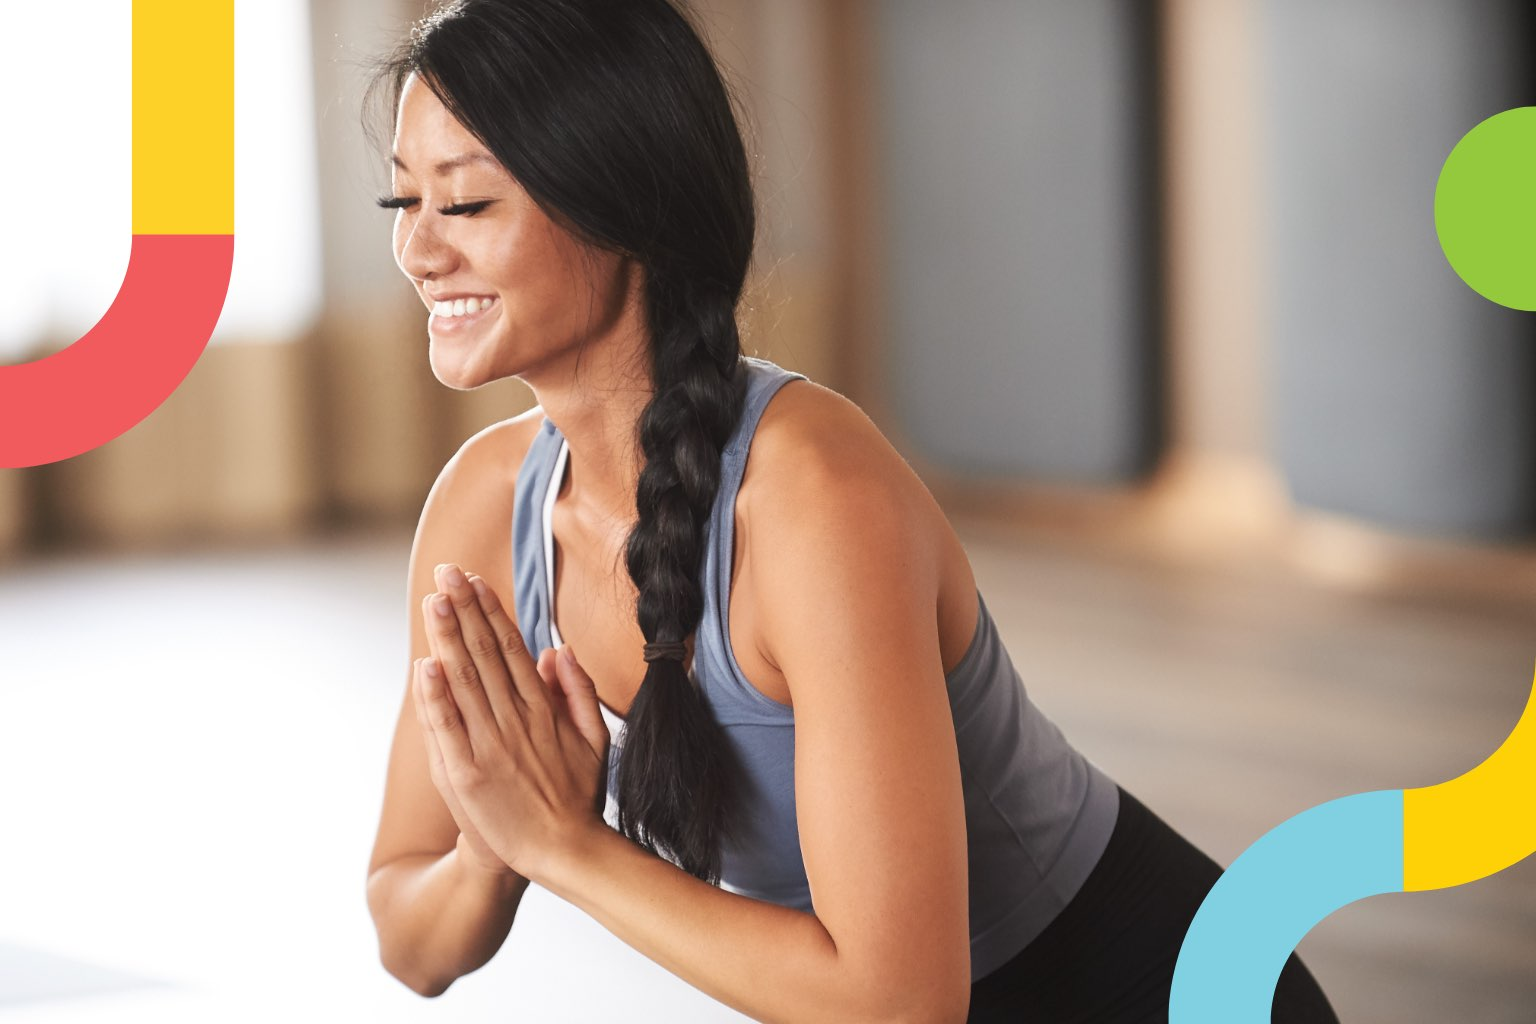 smiling woman with eyes closed and hands in prayer pose